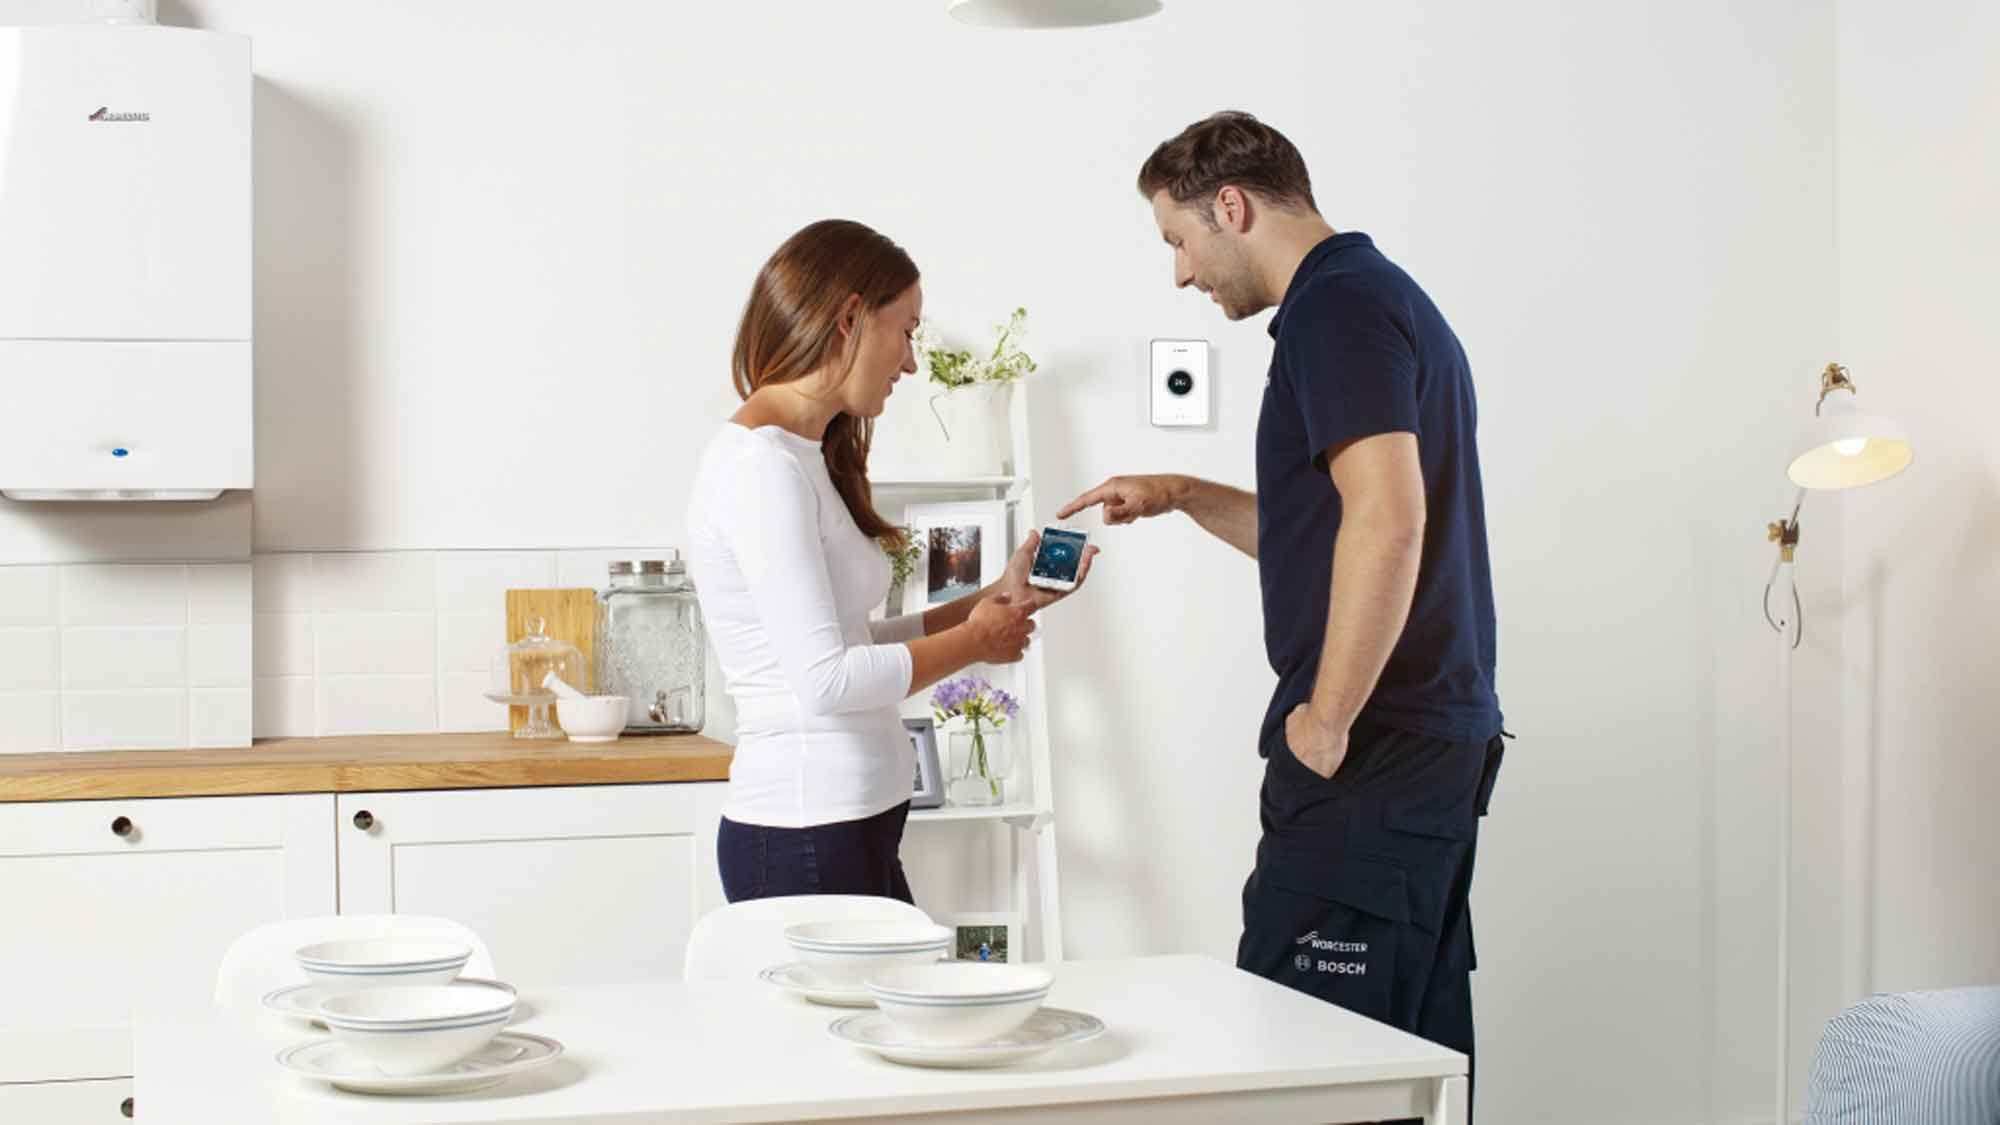 plumbing heating solutions essex maintenance leigh on sea home